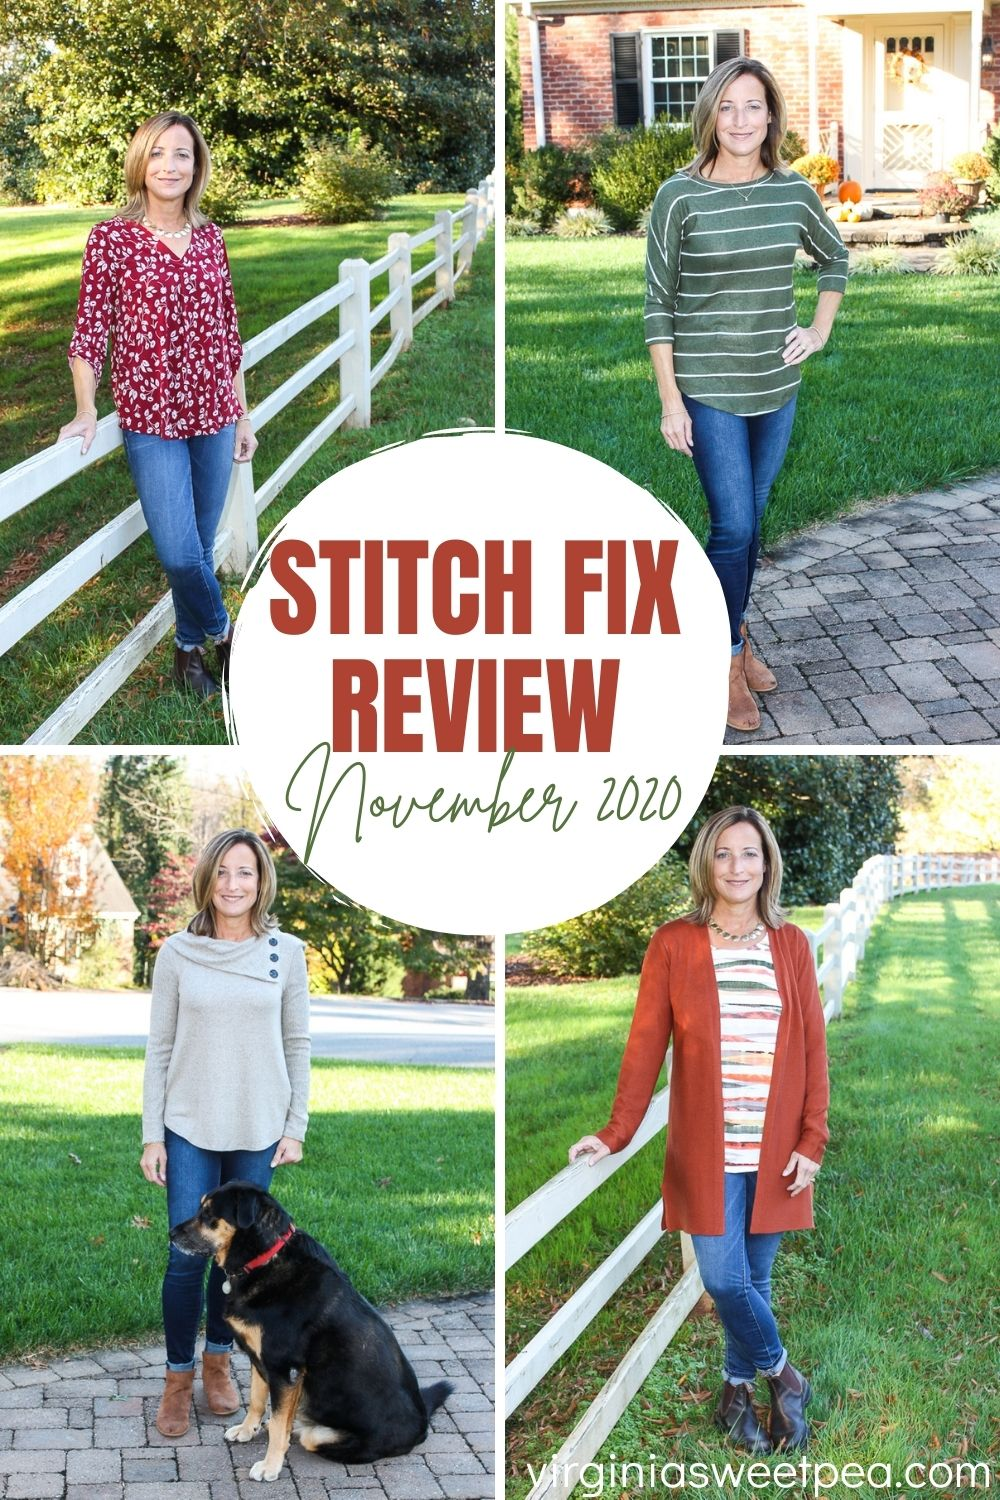 Stitch Fix Review for November 2020 - See styles perfect to enjoy wearing in both fall and winter.  #stitchfix #stitchfixreview  via @spaula